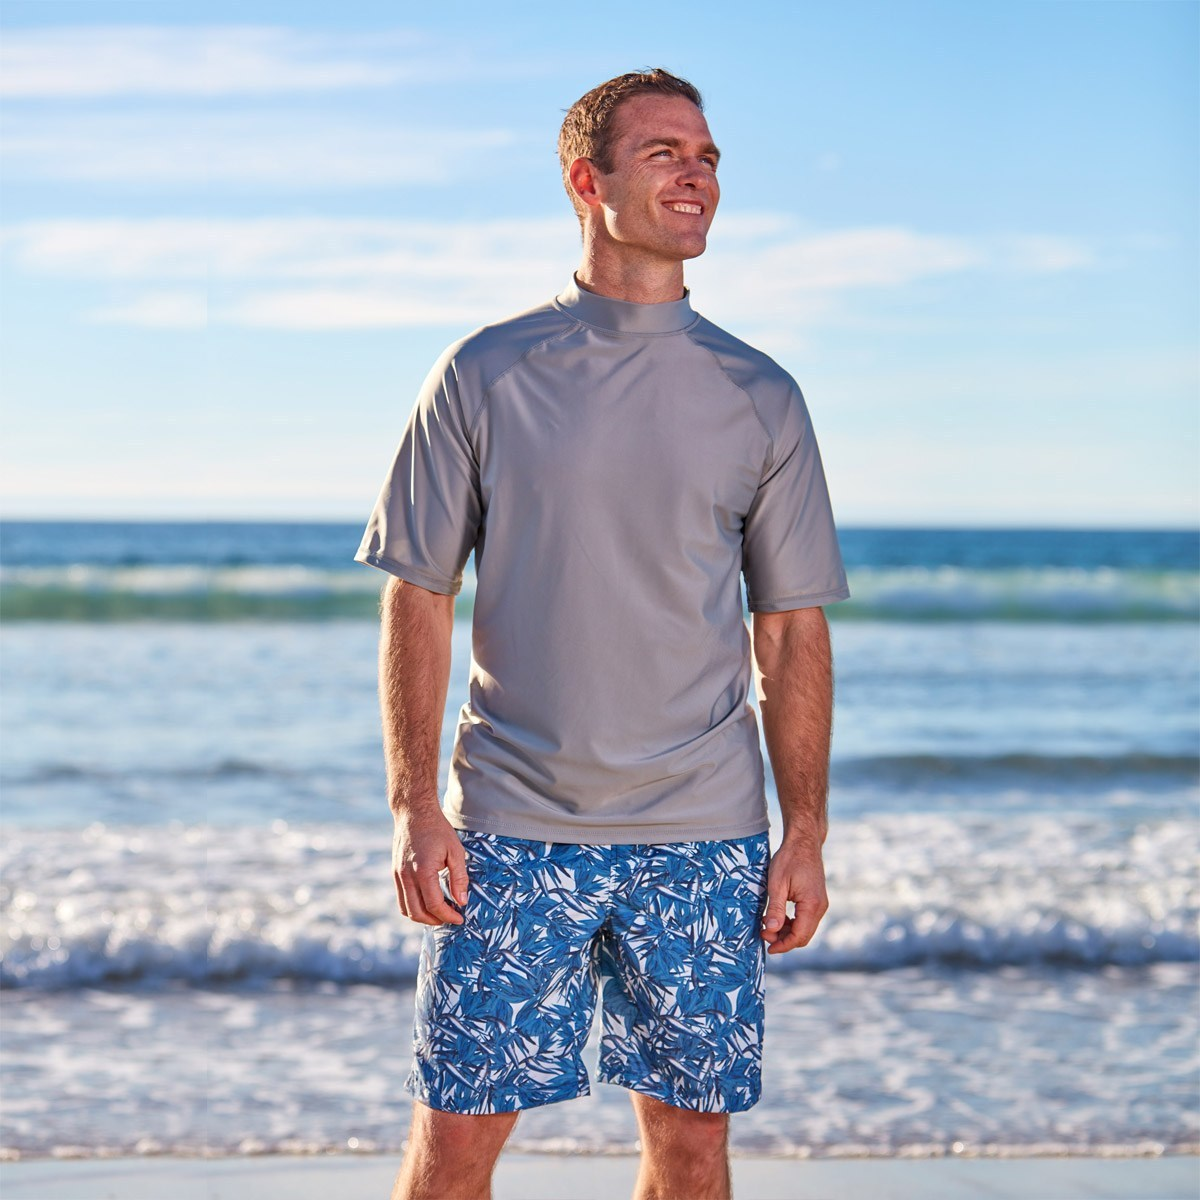 Men's sun protection clothing